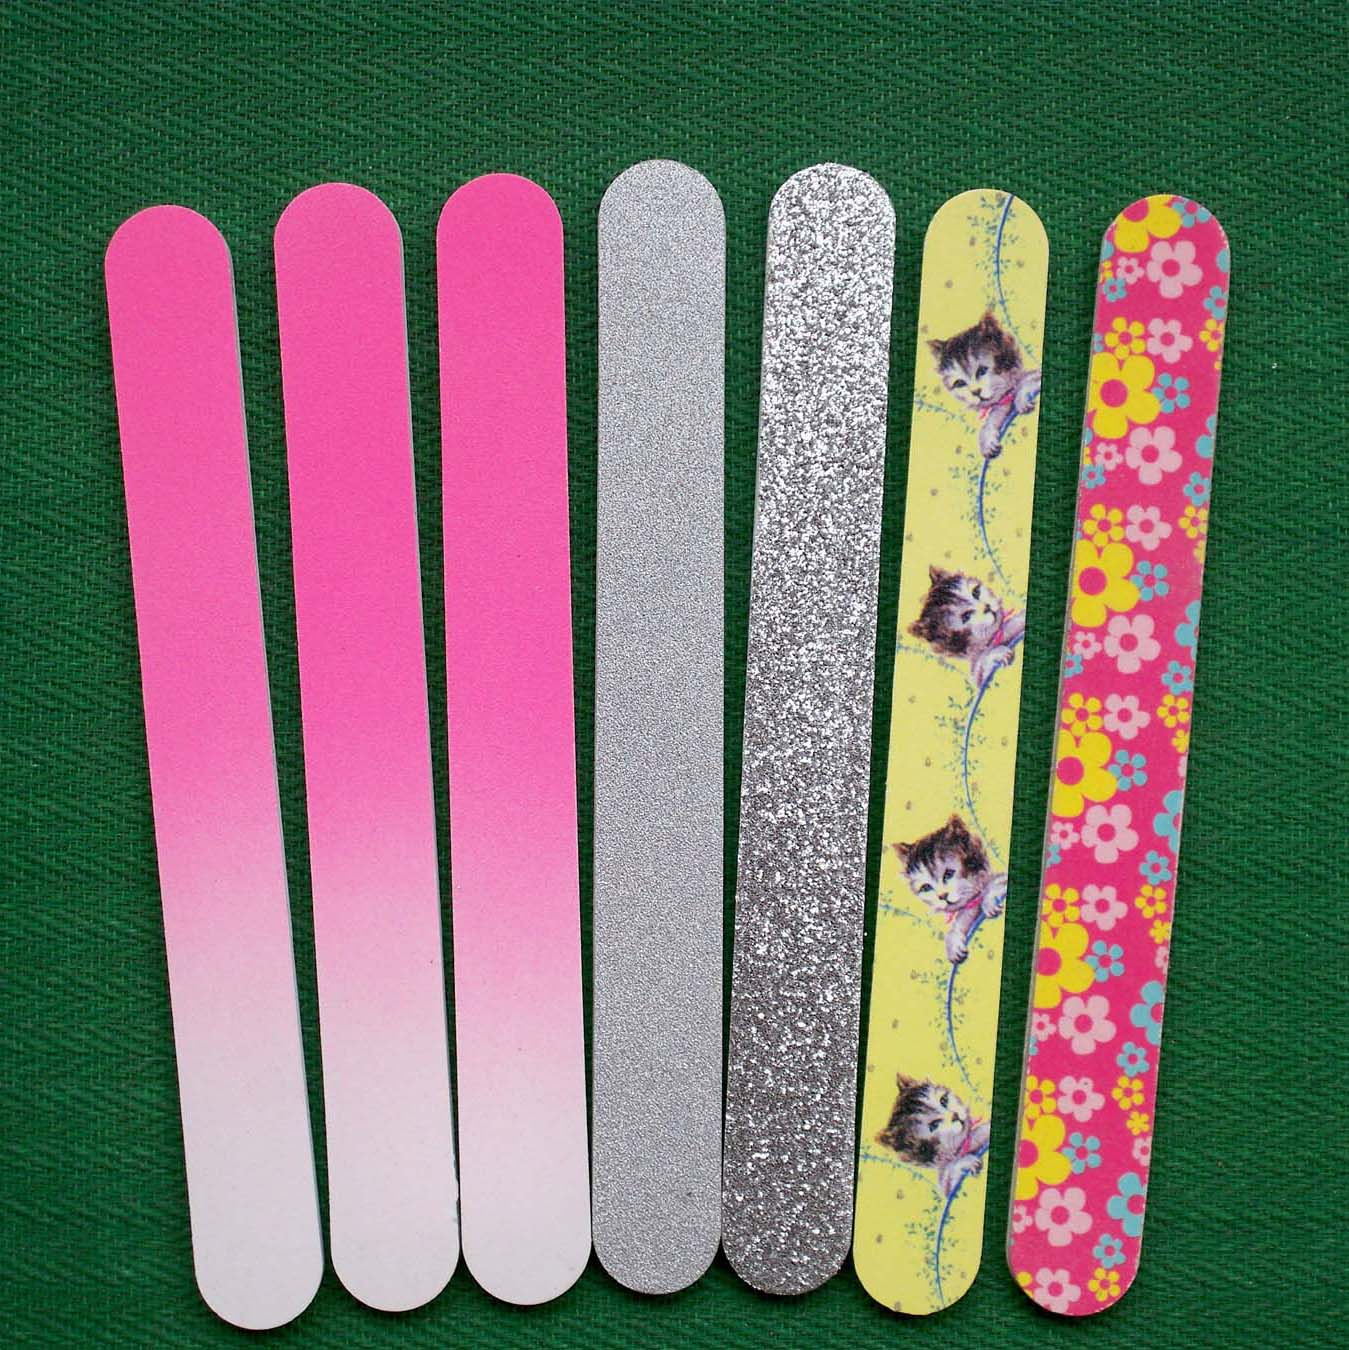 Cheap nail files